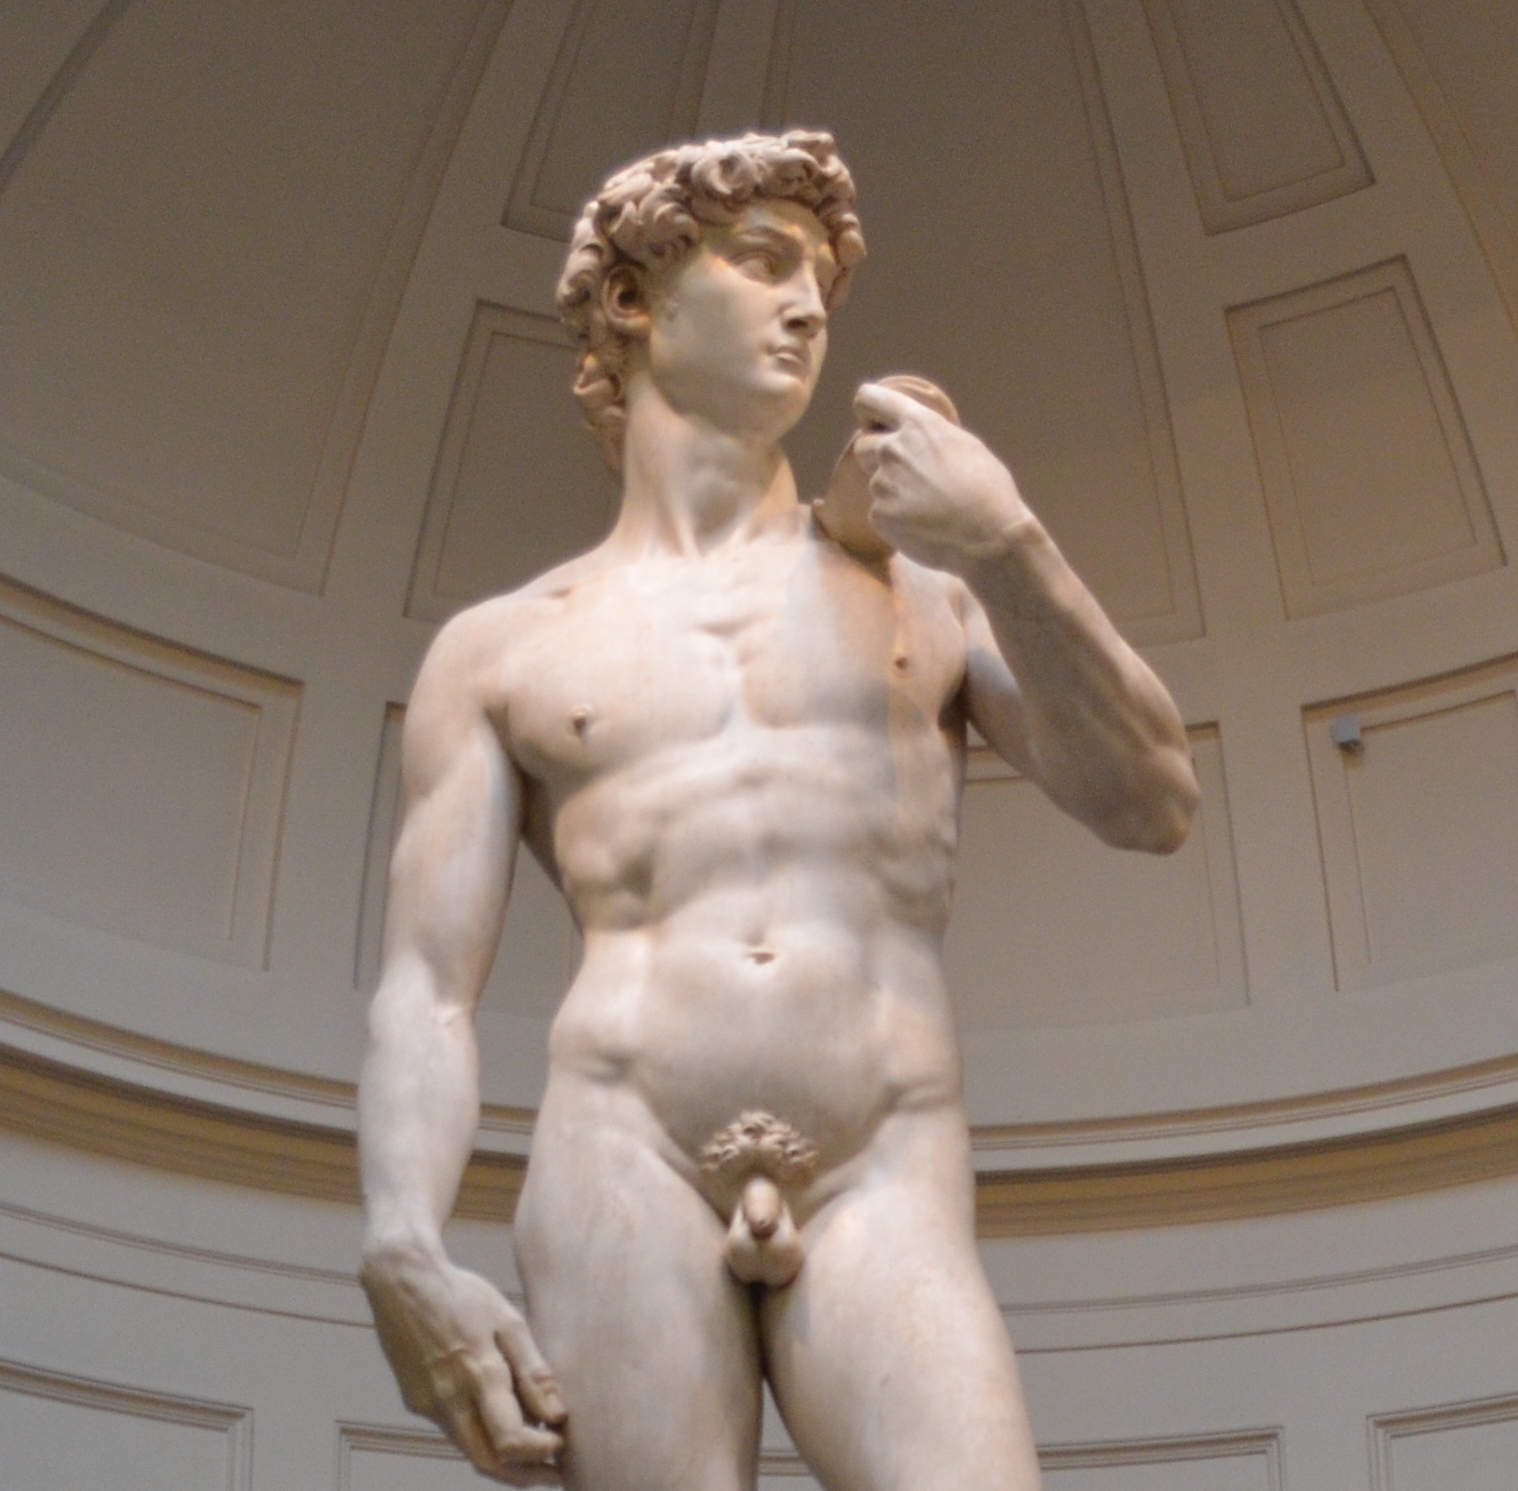 Things to Know about David by Michelangelo